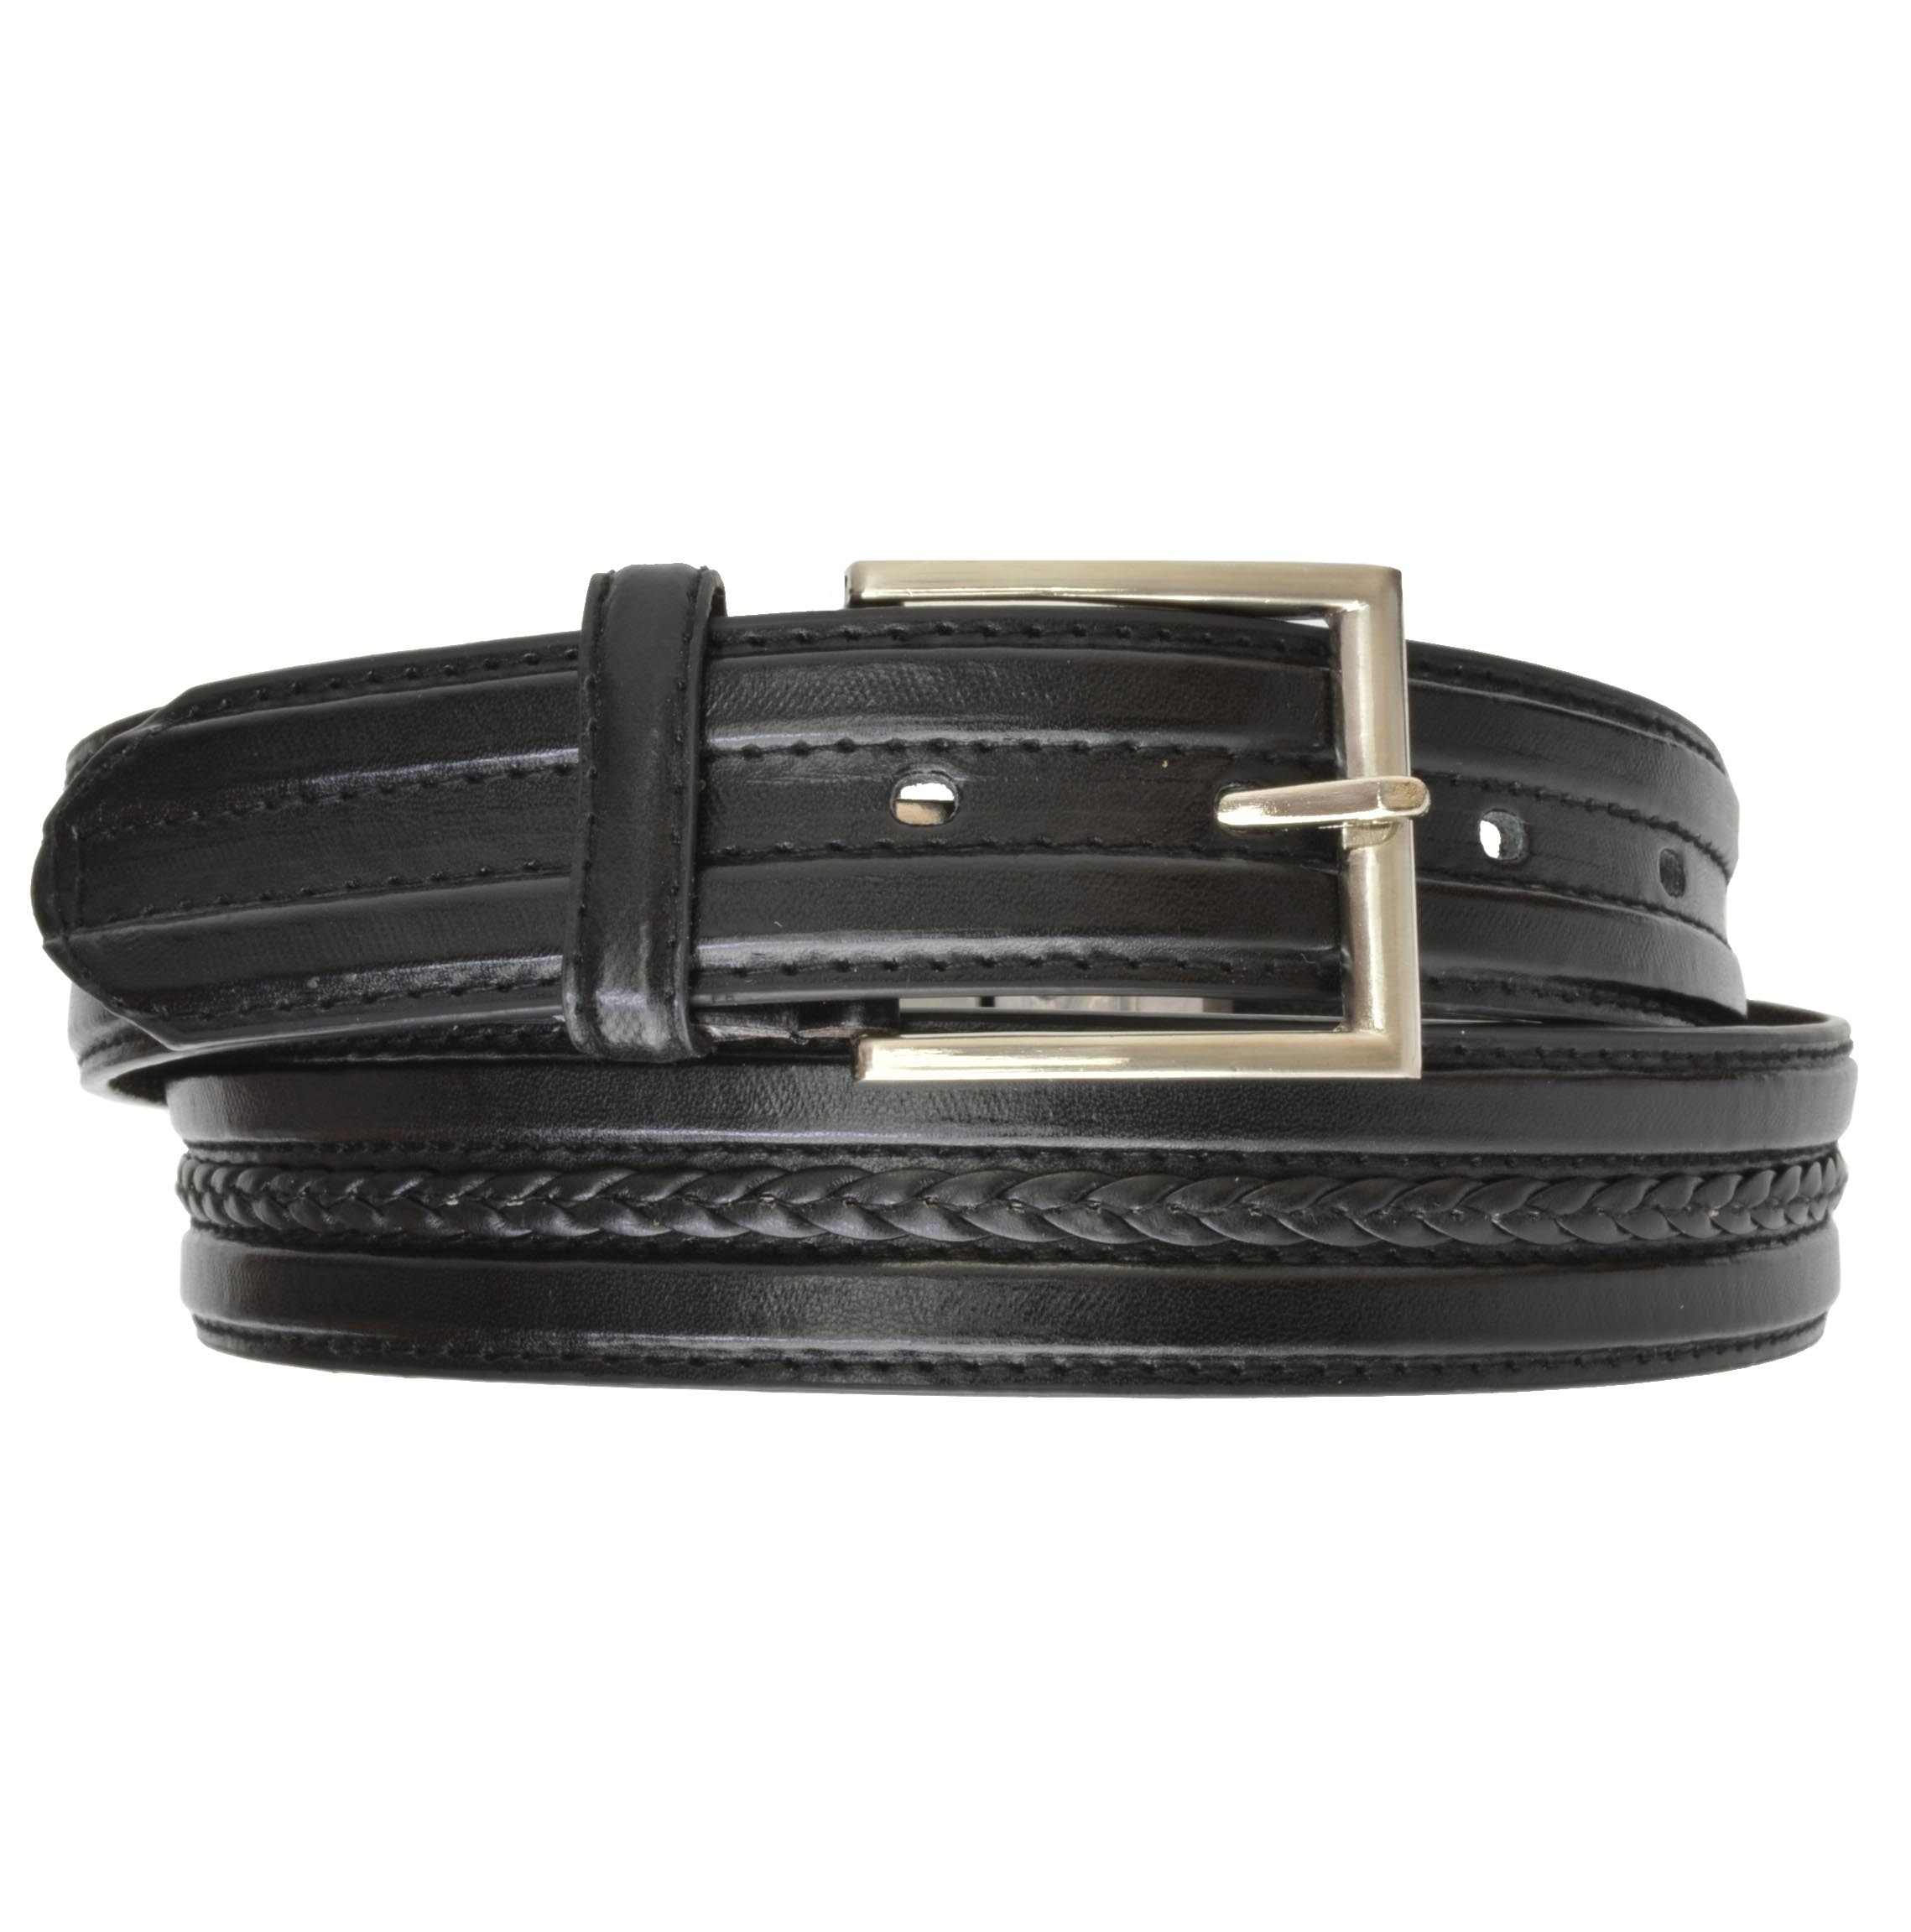 AFONiE Black weave Leather Belt with Buckle for Men - Small 57ac985b469fe23fe127f854